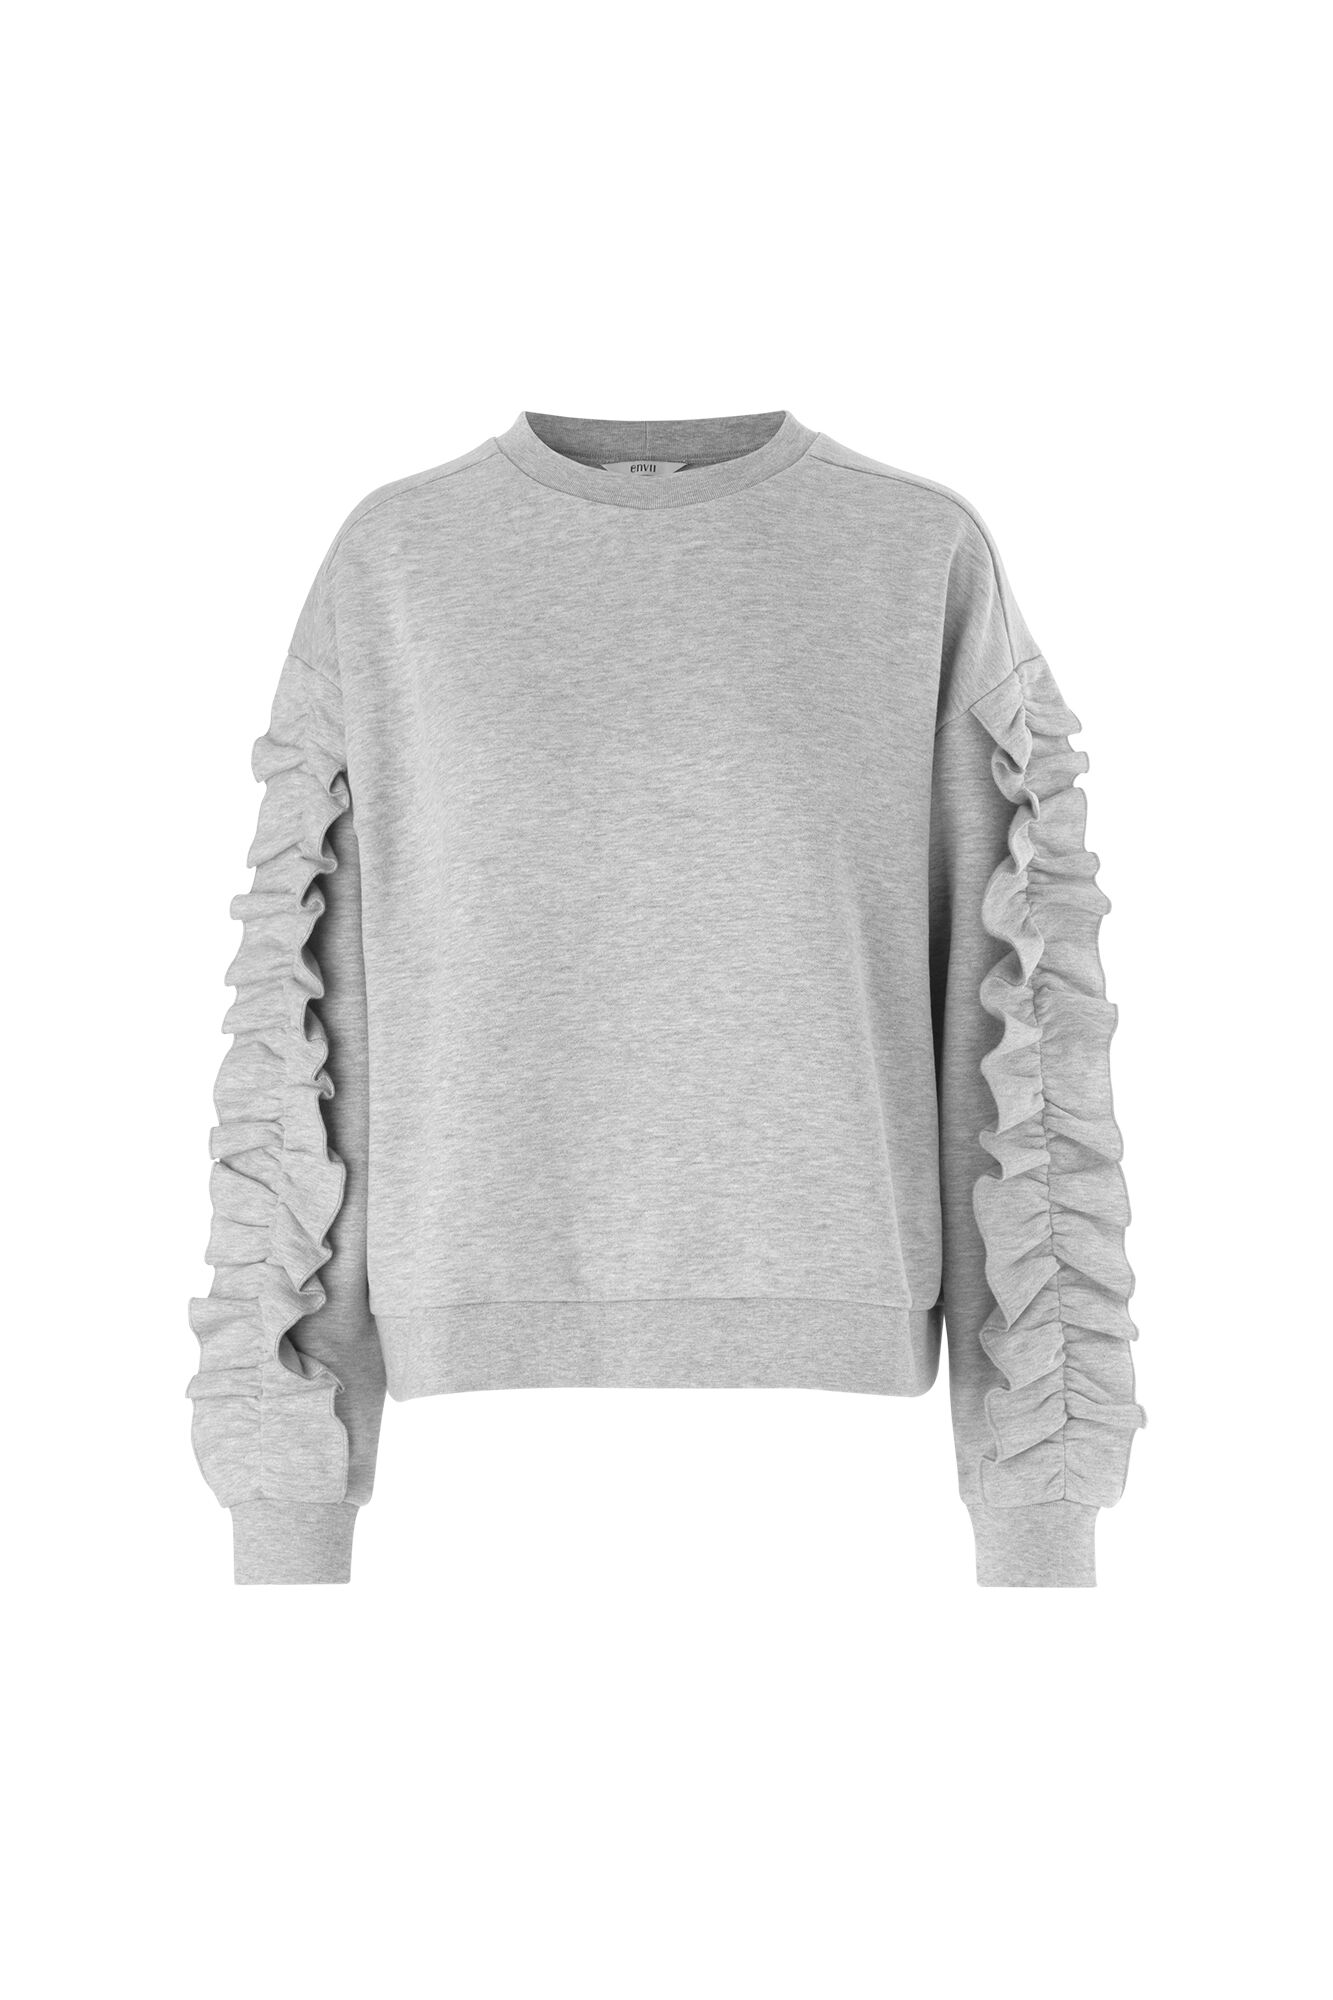 ENSLALOM LS SWEAT 5955, GREY MEL.